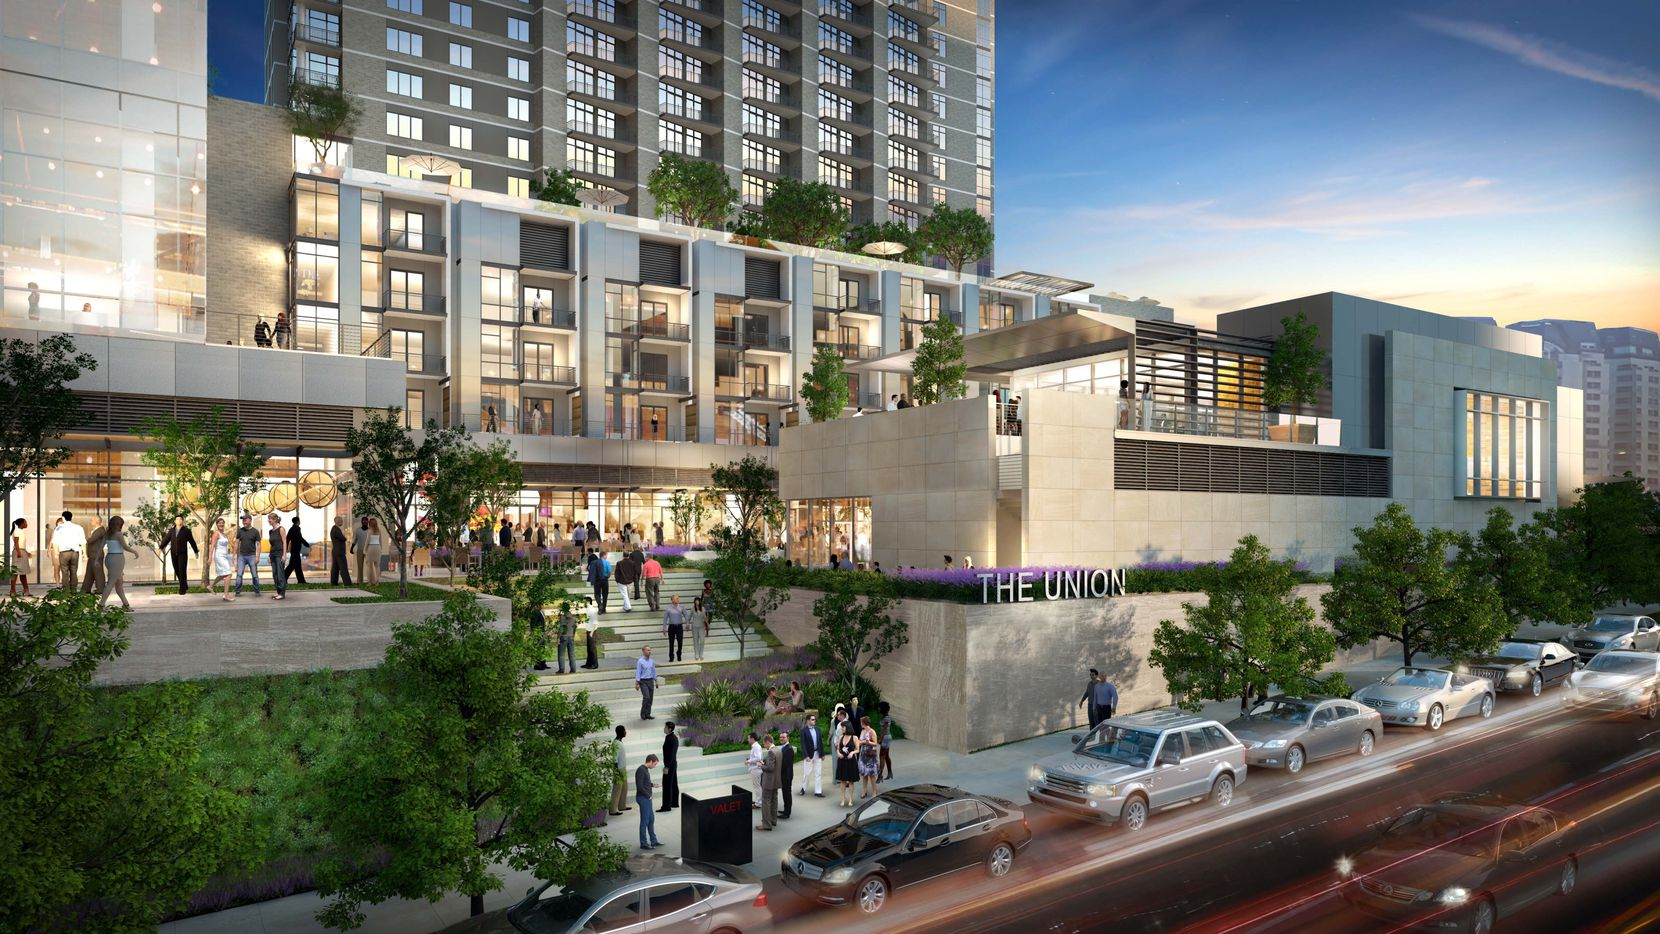 The Union: A two-tower, Uptown Dallas mixed-use development with a 22-story office tower and a 23-story apartment high-rise. The $300 million project will be completed in mid-2018.